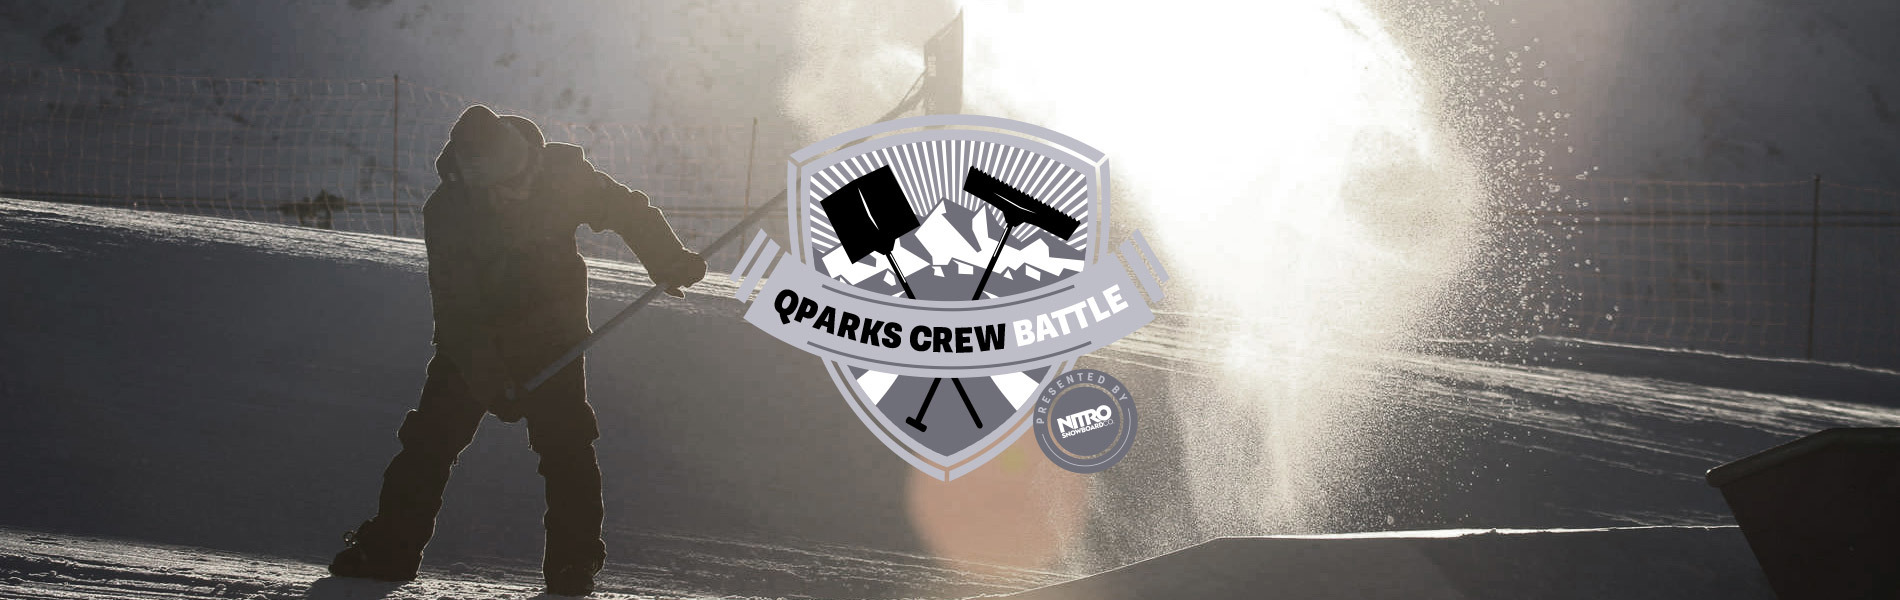 QParks Crew Battle presented by NITRO – Wir benötigen euren SUPPORT!